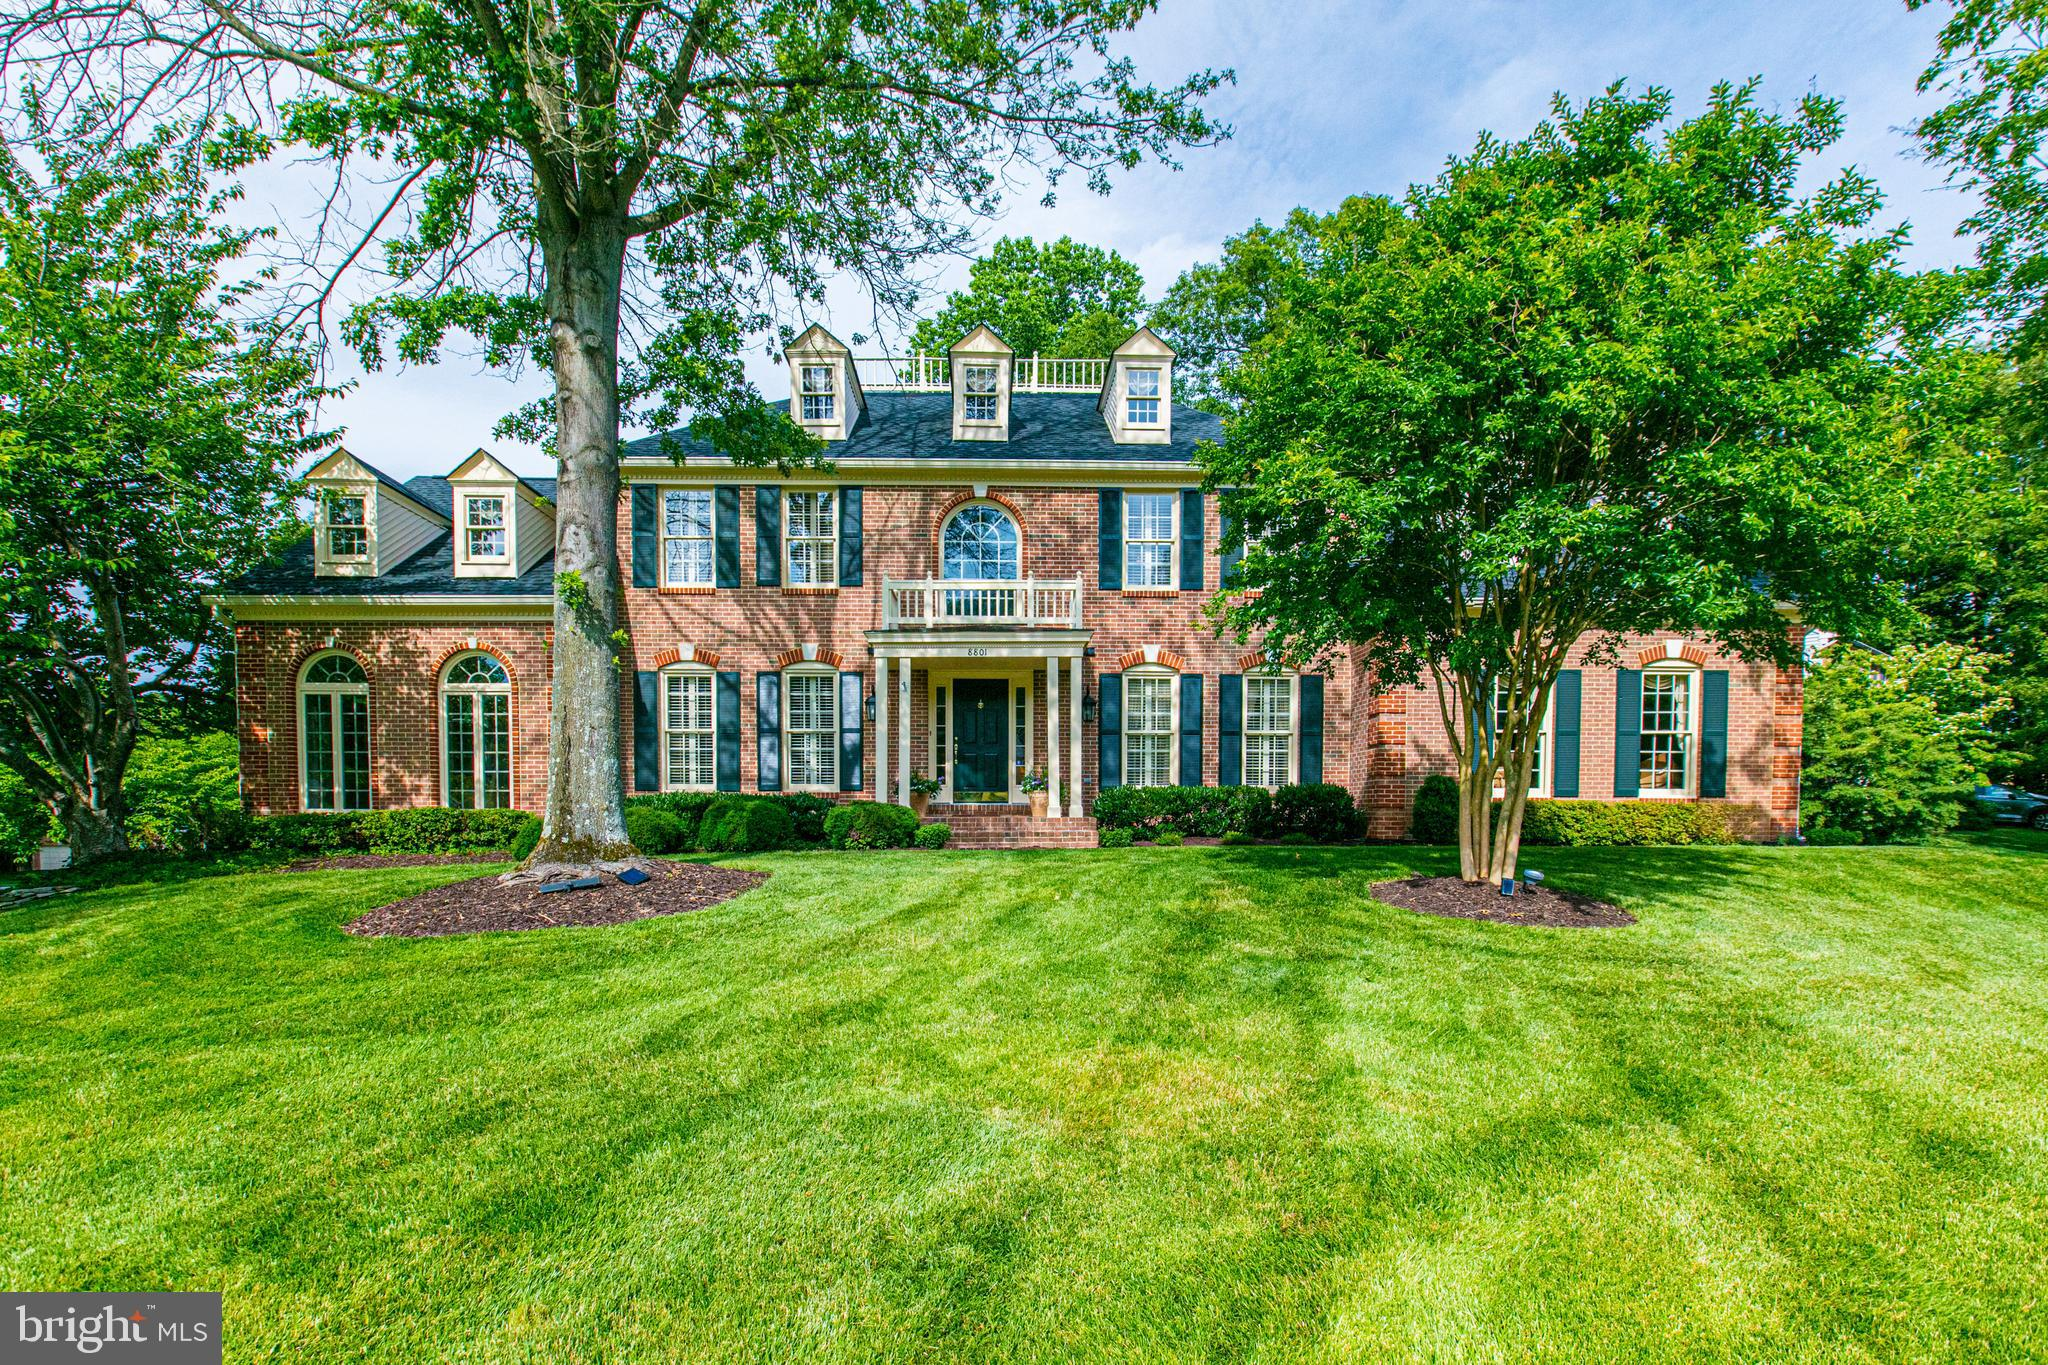 Welcome to the handsome elegance of this luxury single family home complete with high-end architectu